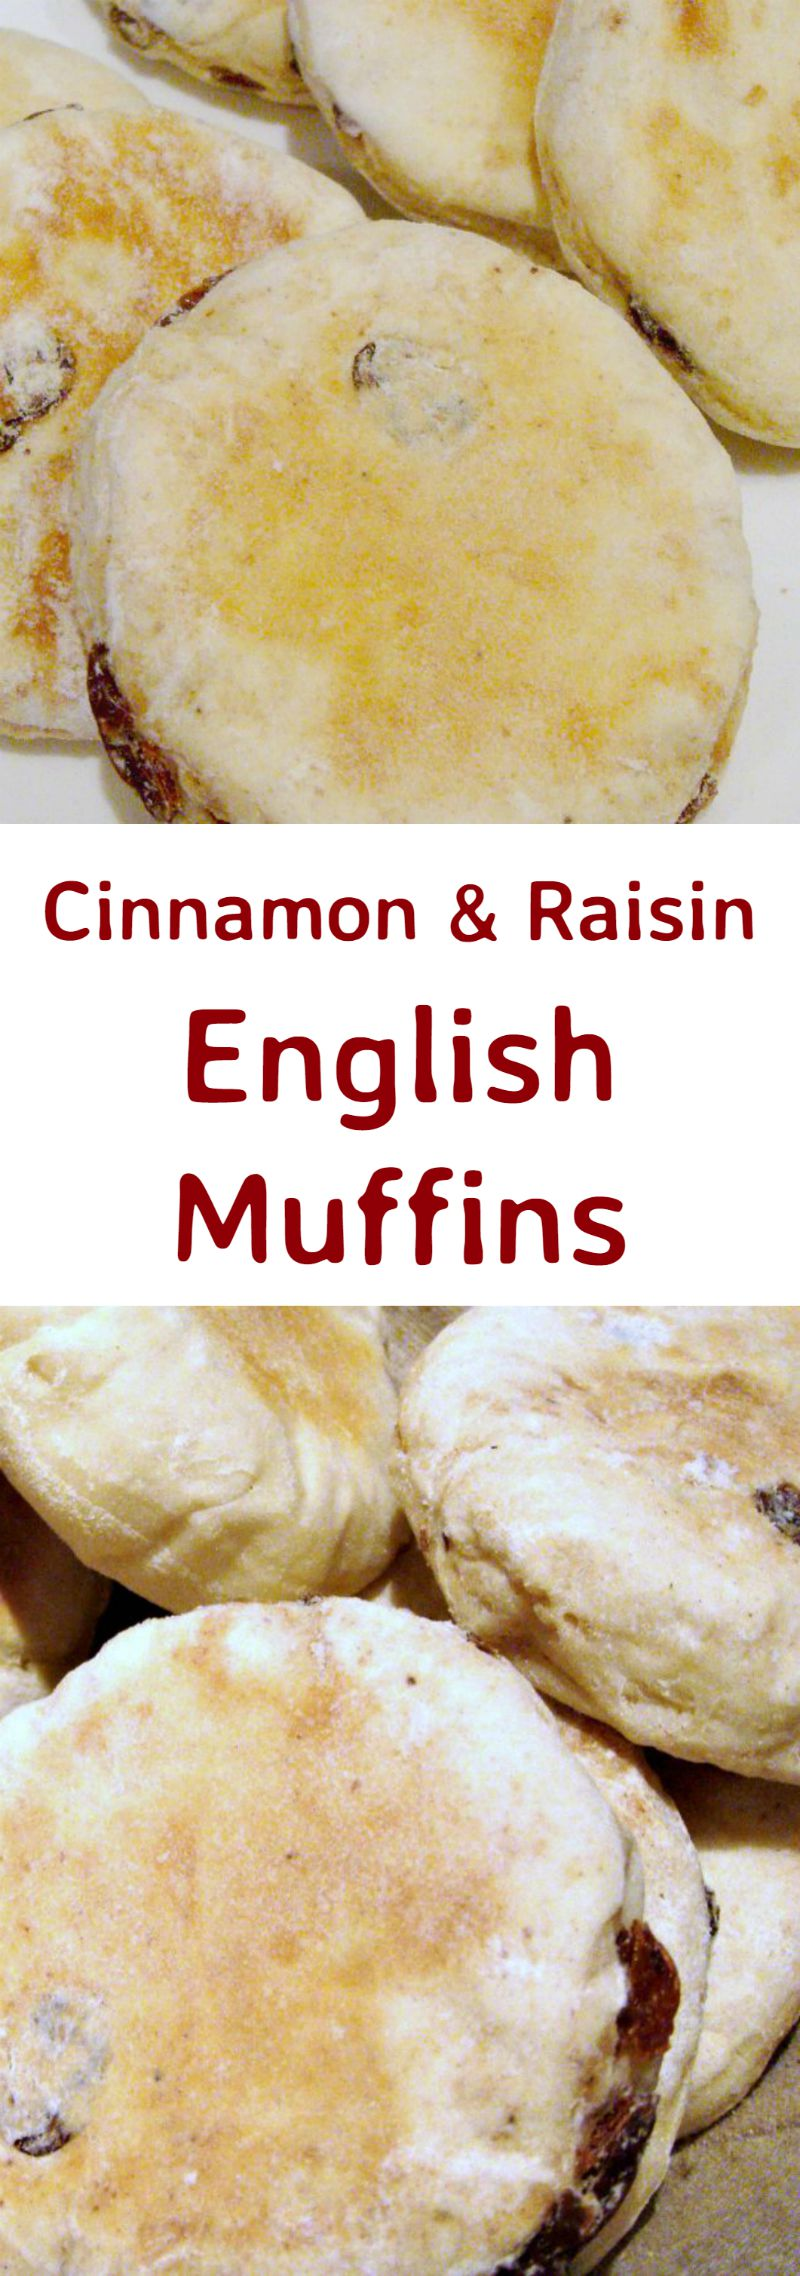 Cinnamon & Raisin English Muffins - Delicious opened and served warm with a nice spread of butter on each half! Easy stove top recipe.